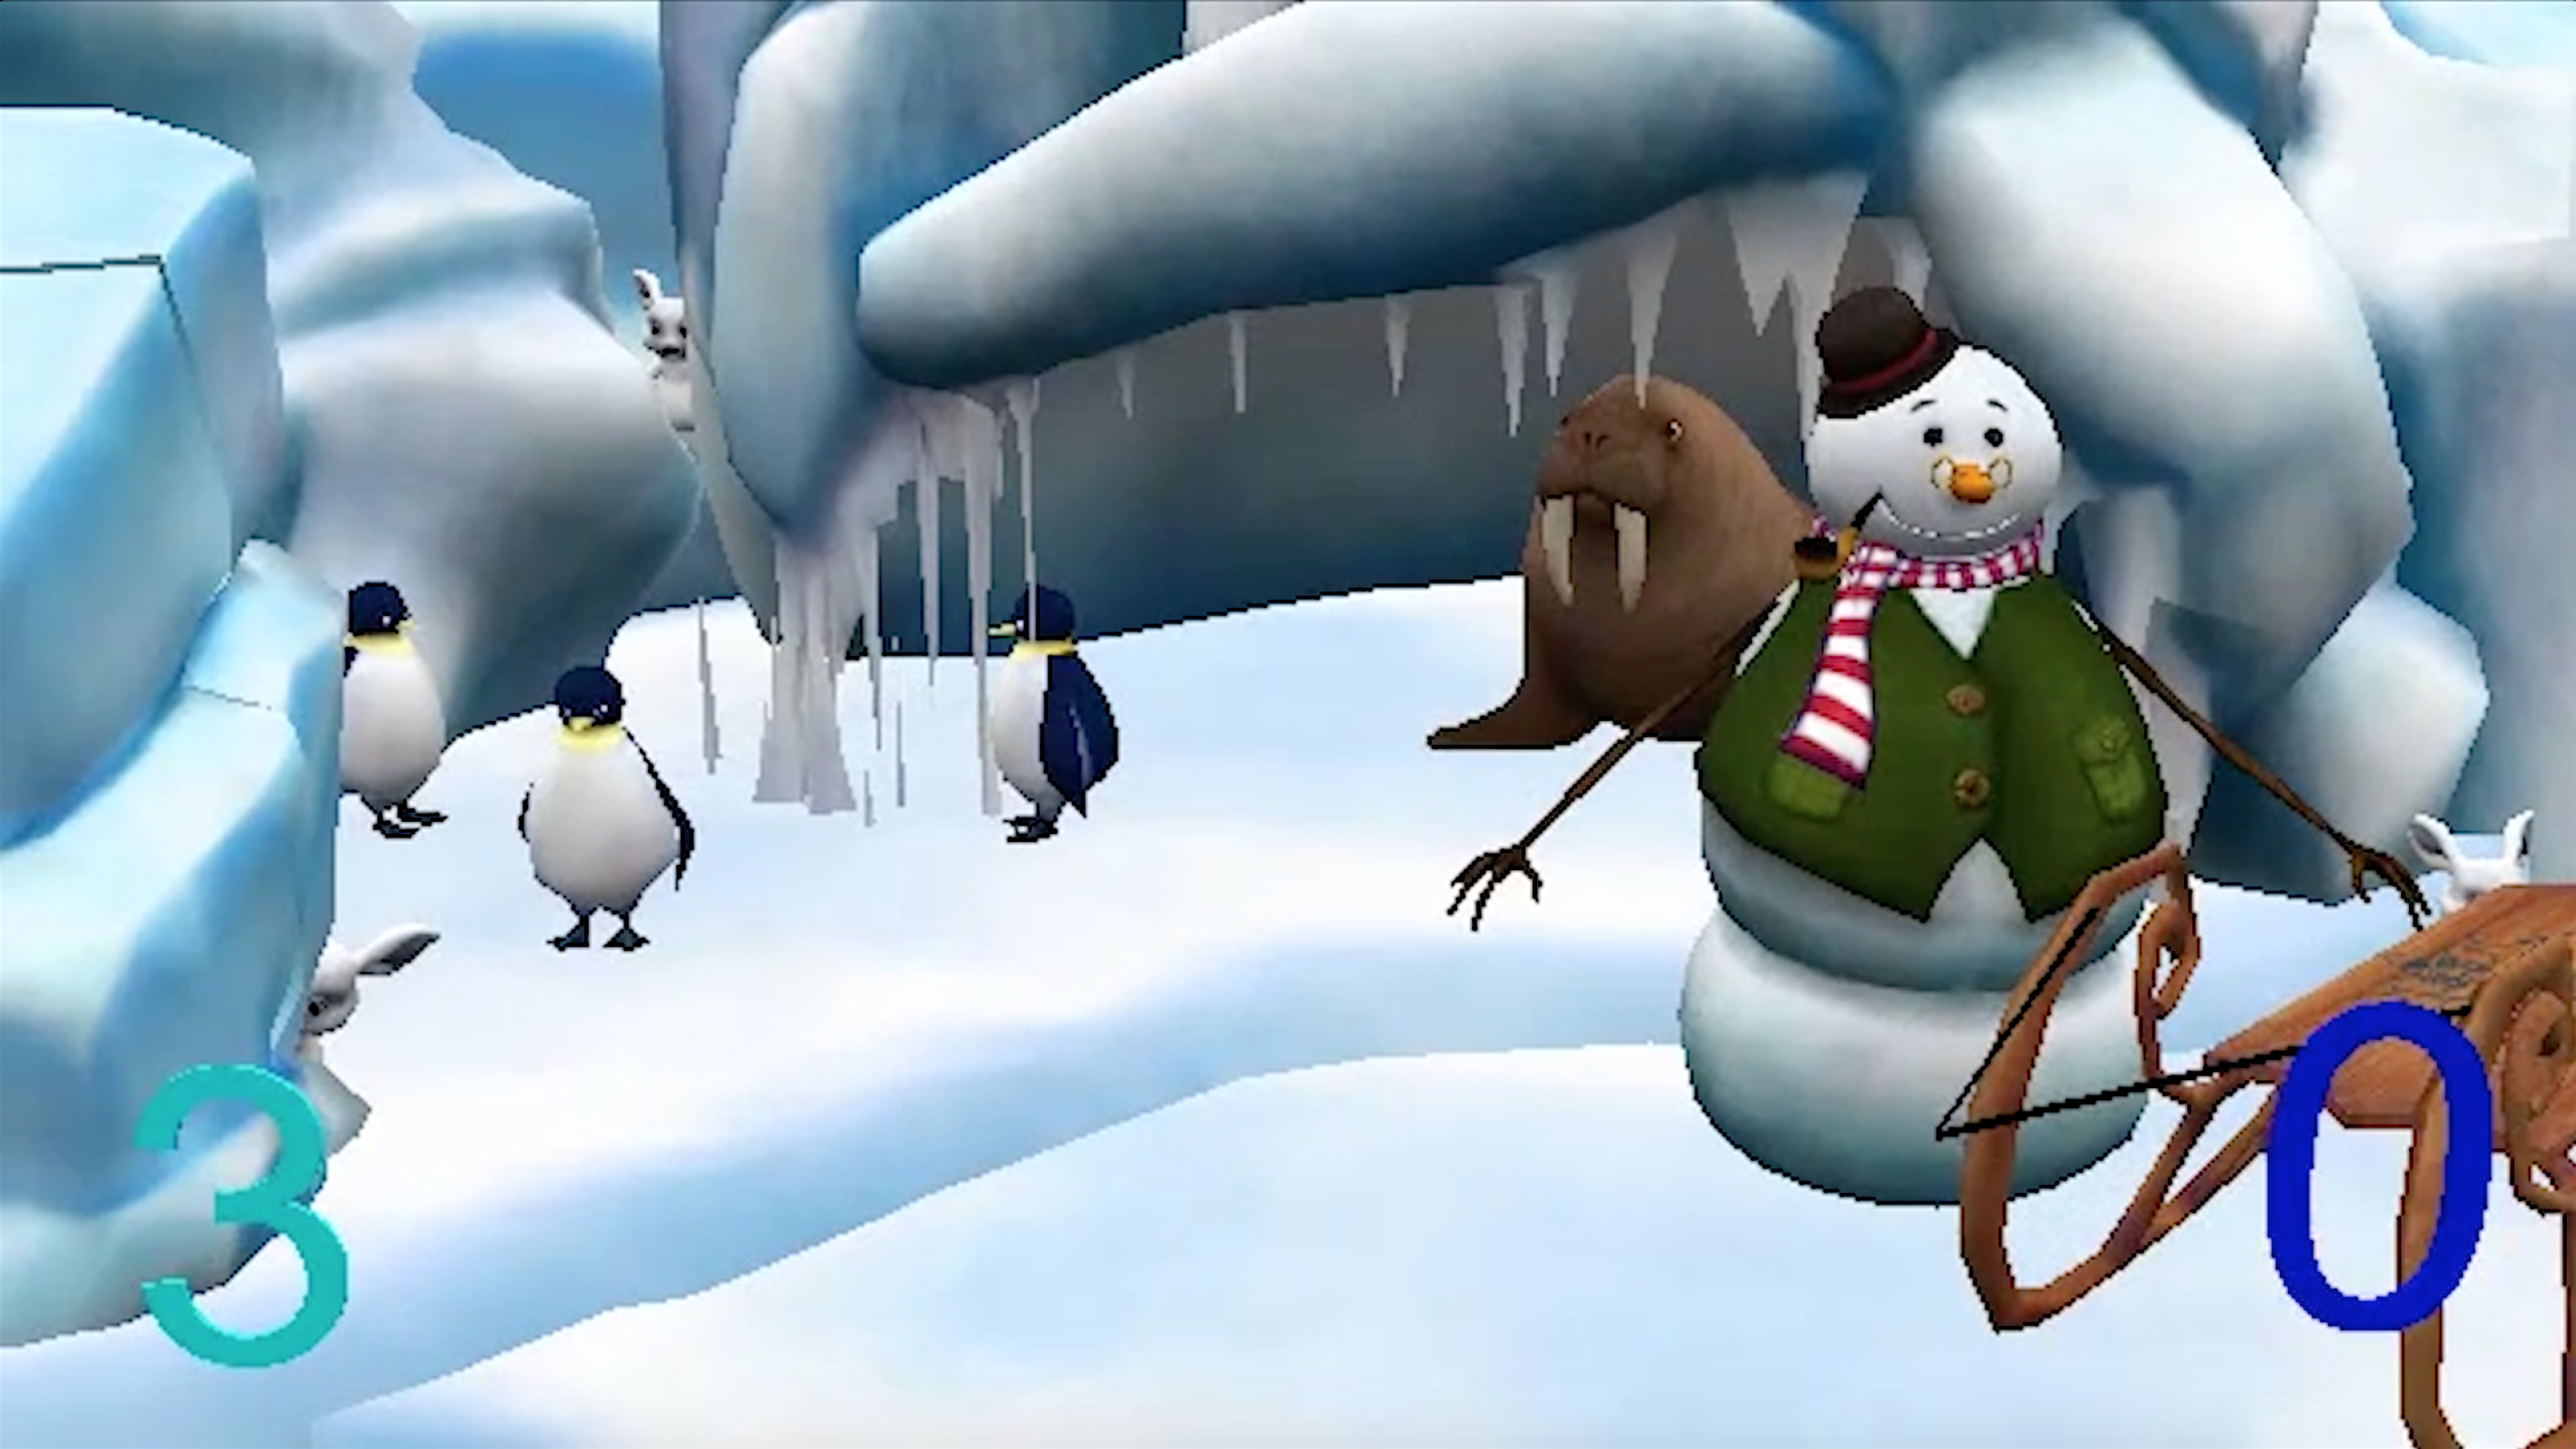 Isabel Rabalais, who took the class in spring of 2016, created a game in I-Spy style, in which users are asked to find a rabbit among different settings such as this icy scene.